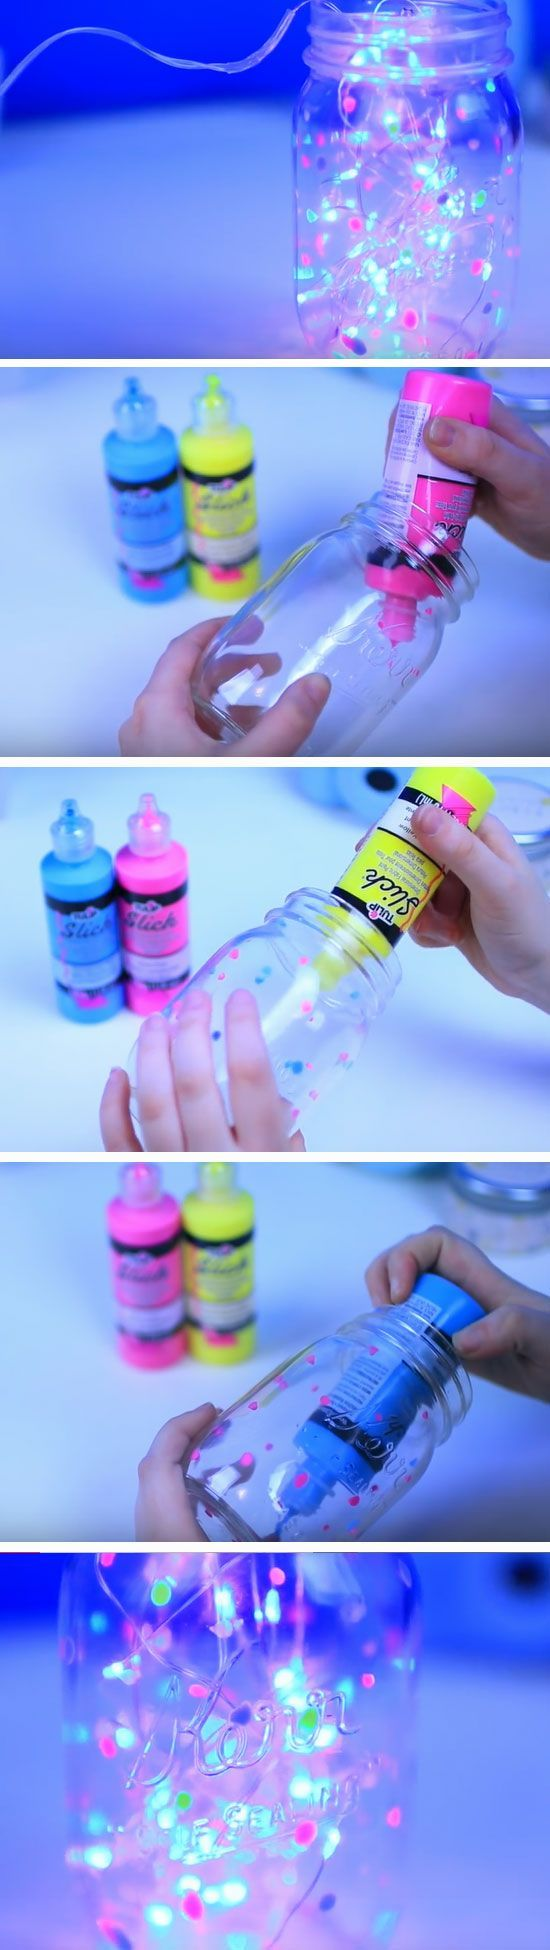 Die besten 25 diy tumblr ideen auf pinterest teenager for Zimmerdekoration diy